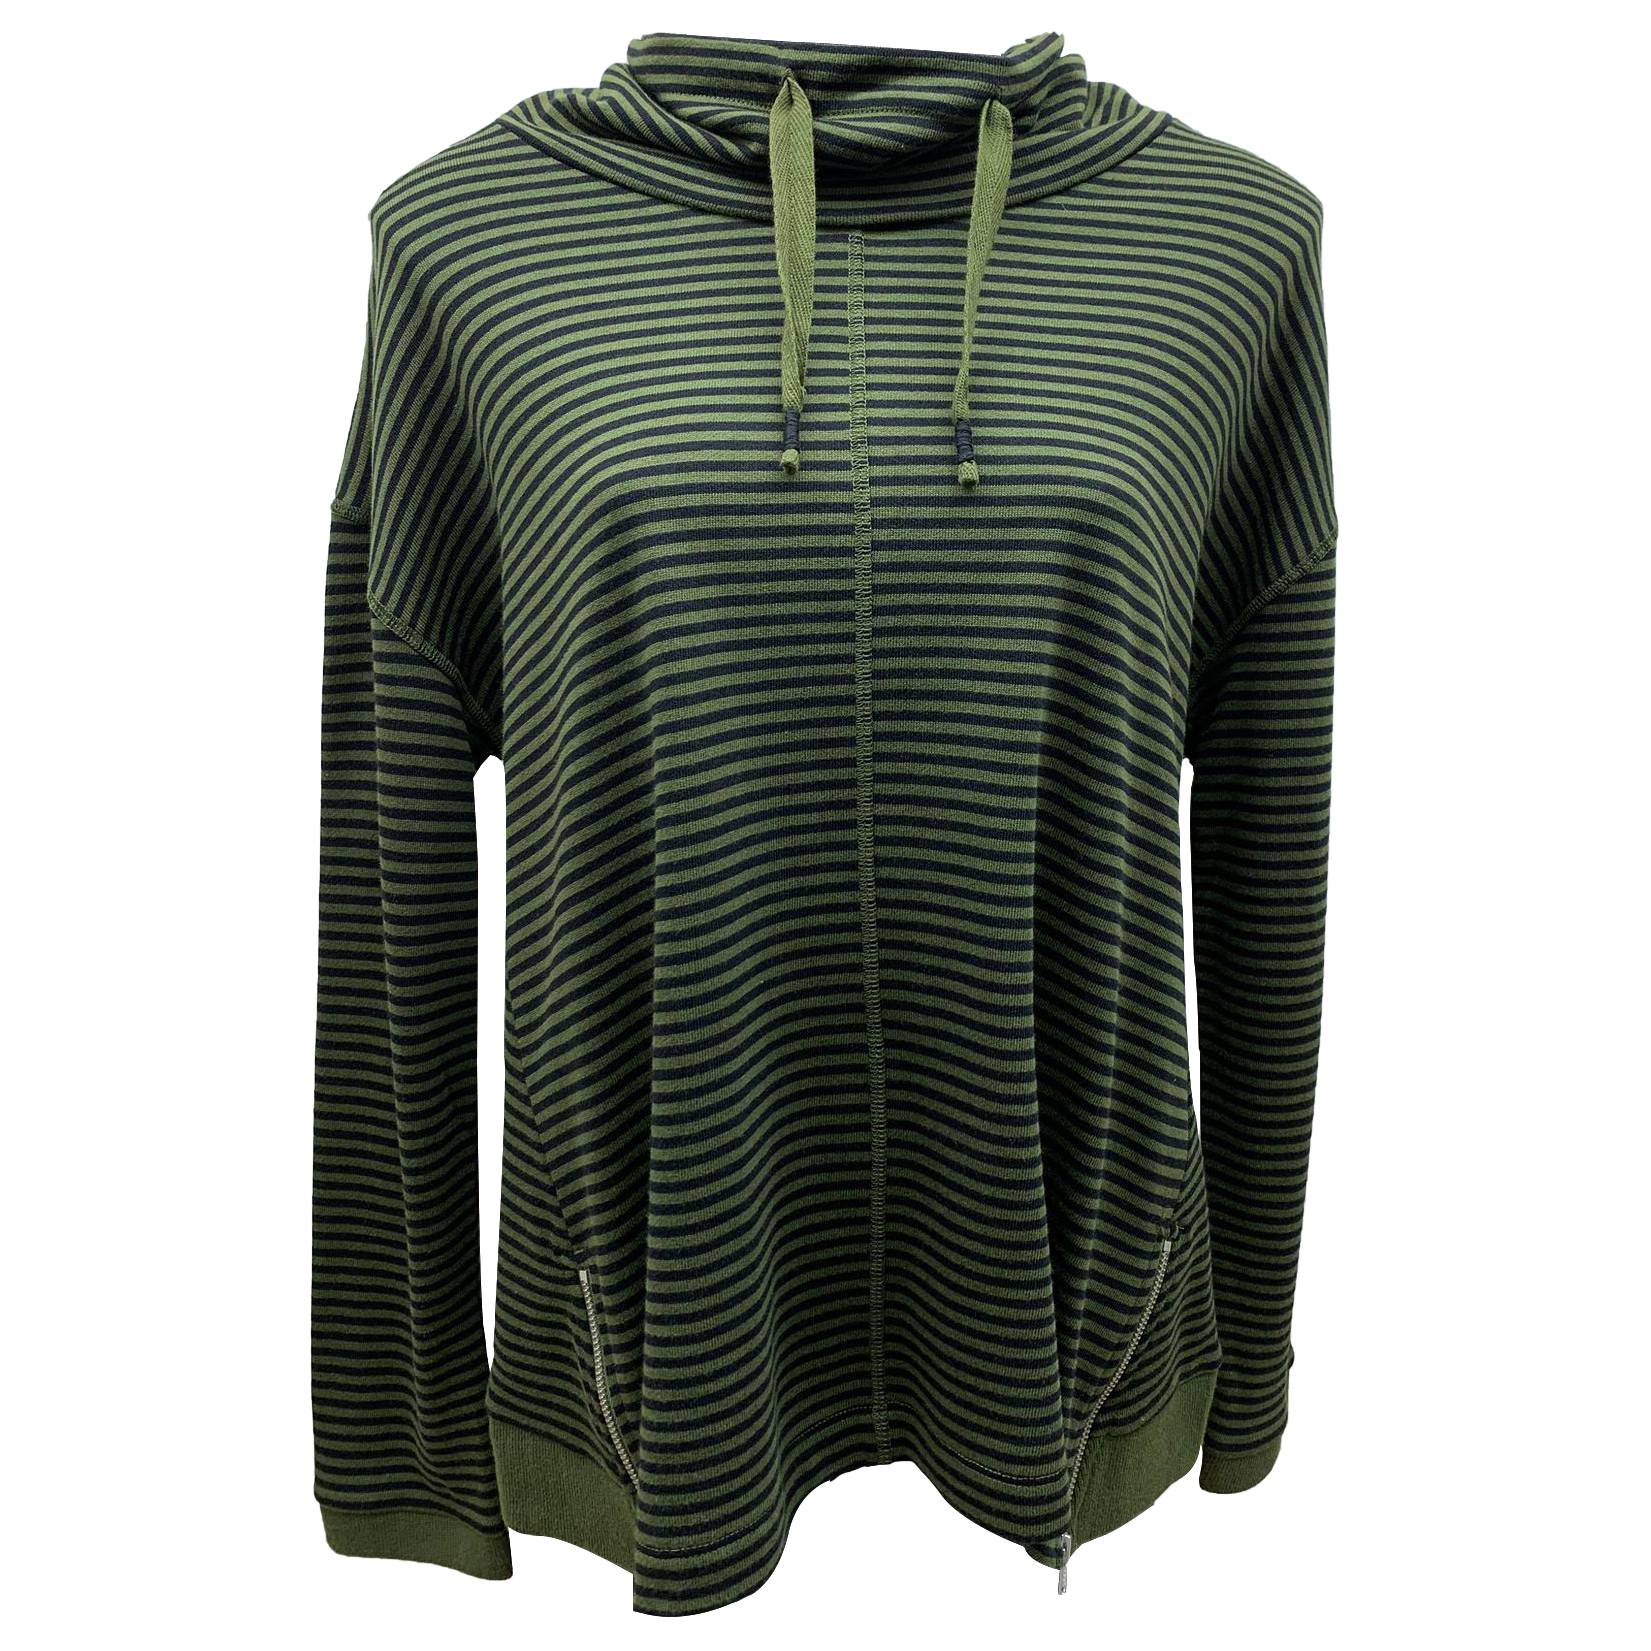 Foil Band On The Run Sweat shirt in Moss/Black